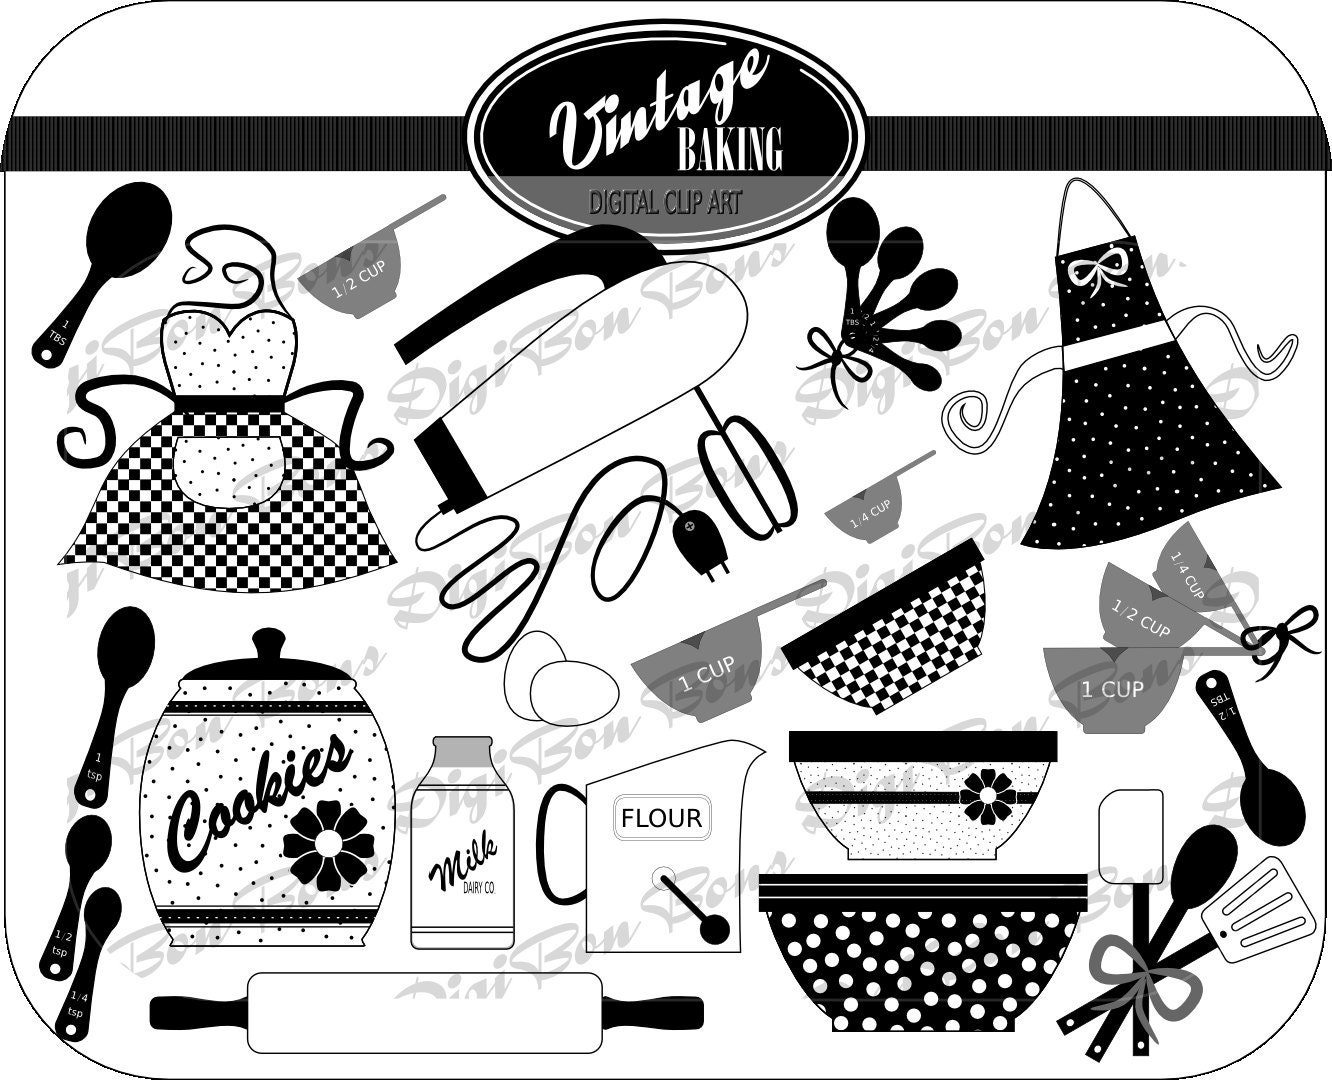 Vintage Baking Digital Clip Art in Black White & by DigiBonBons